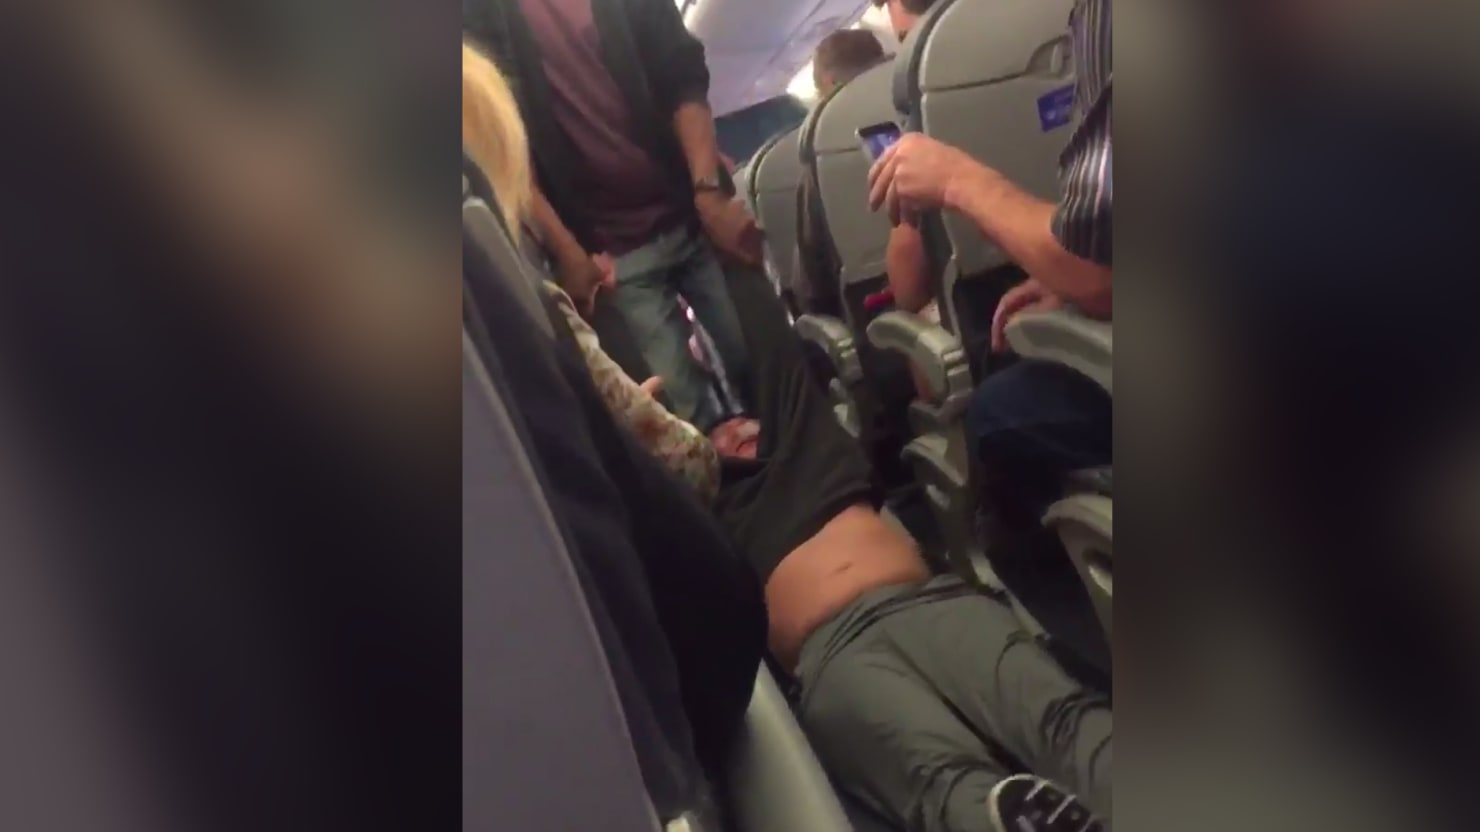 Horrifying Video Shows a Man Being Dragged Off an Overbooked United Airlines Flight